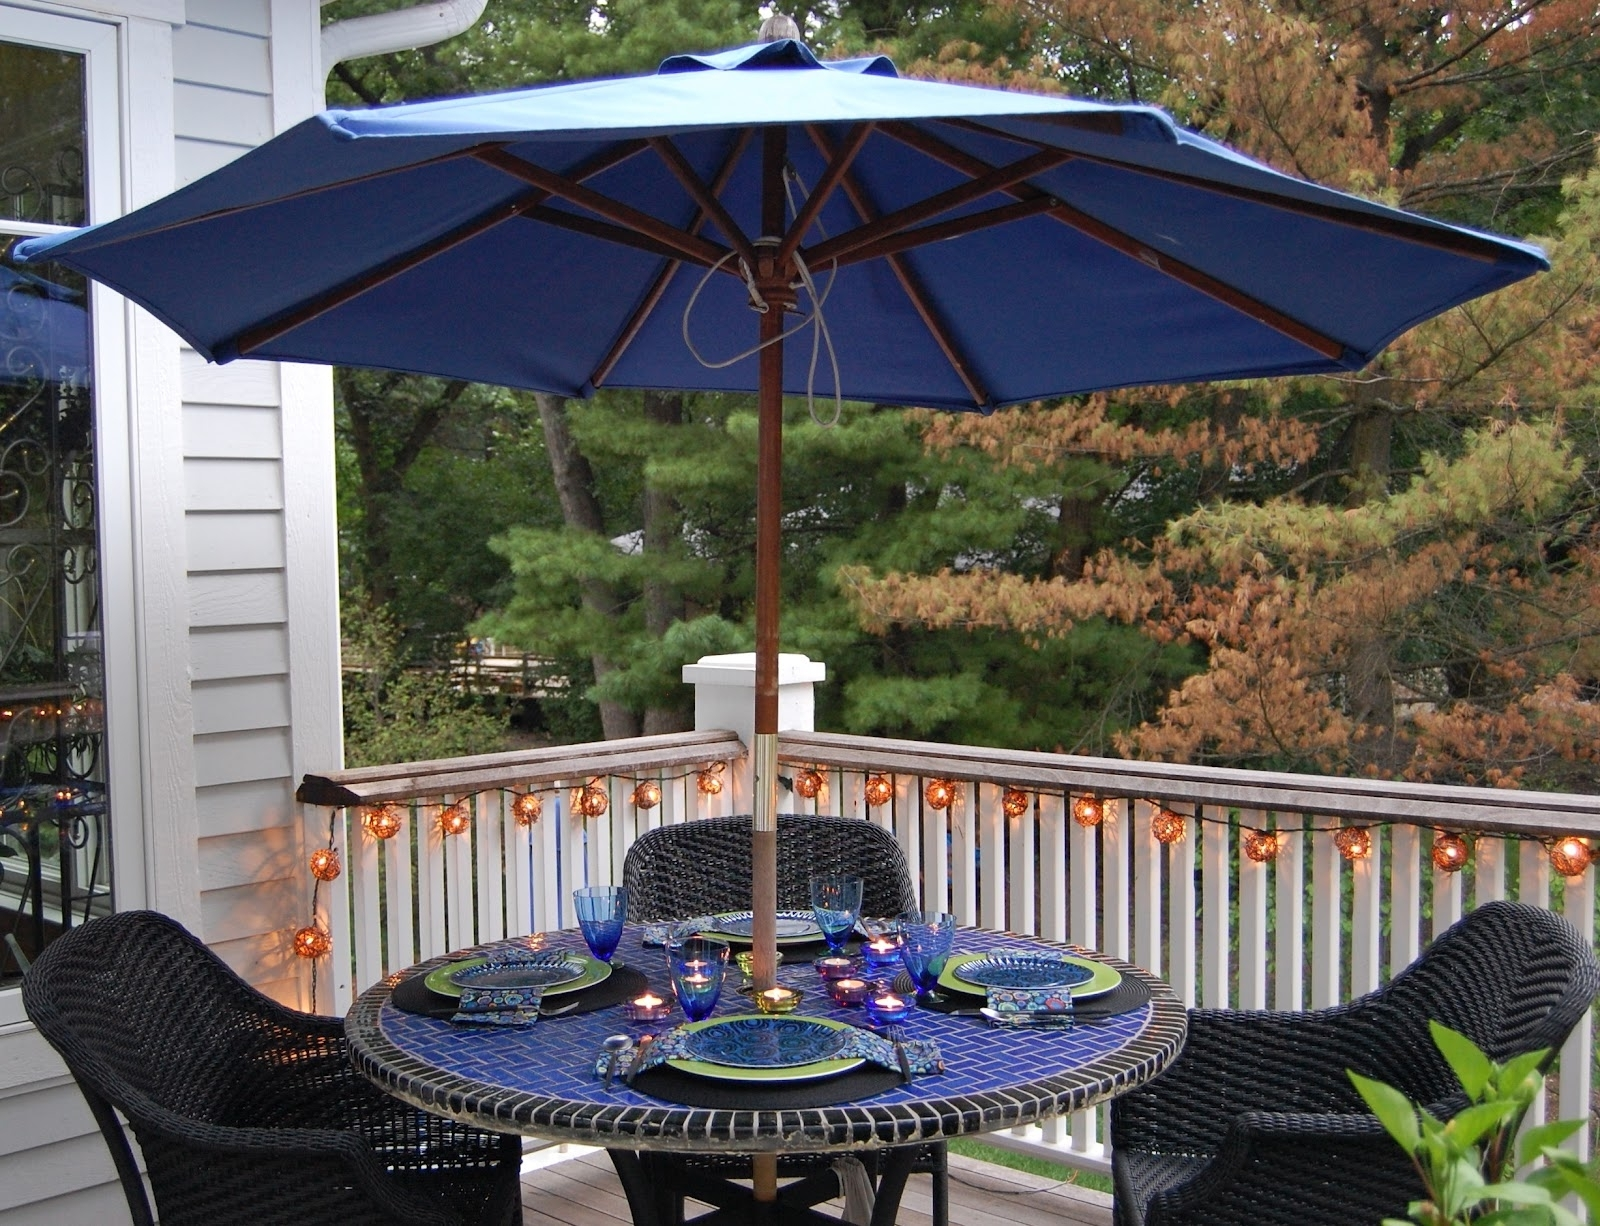 2019 Walmart Umbrellas Patio Within Furniture: Outdoor Outdoor Patio Sets With Umbrella Awesome Design (Gallery 13 of 20)